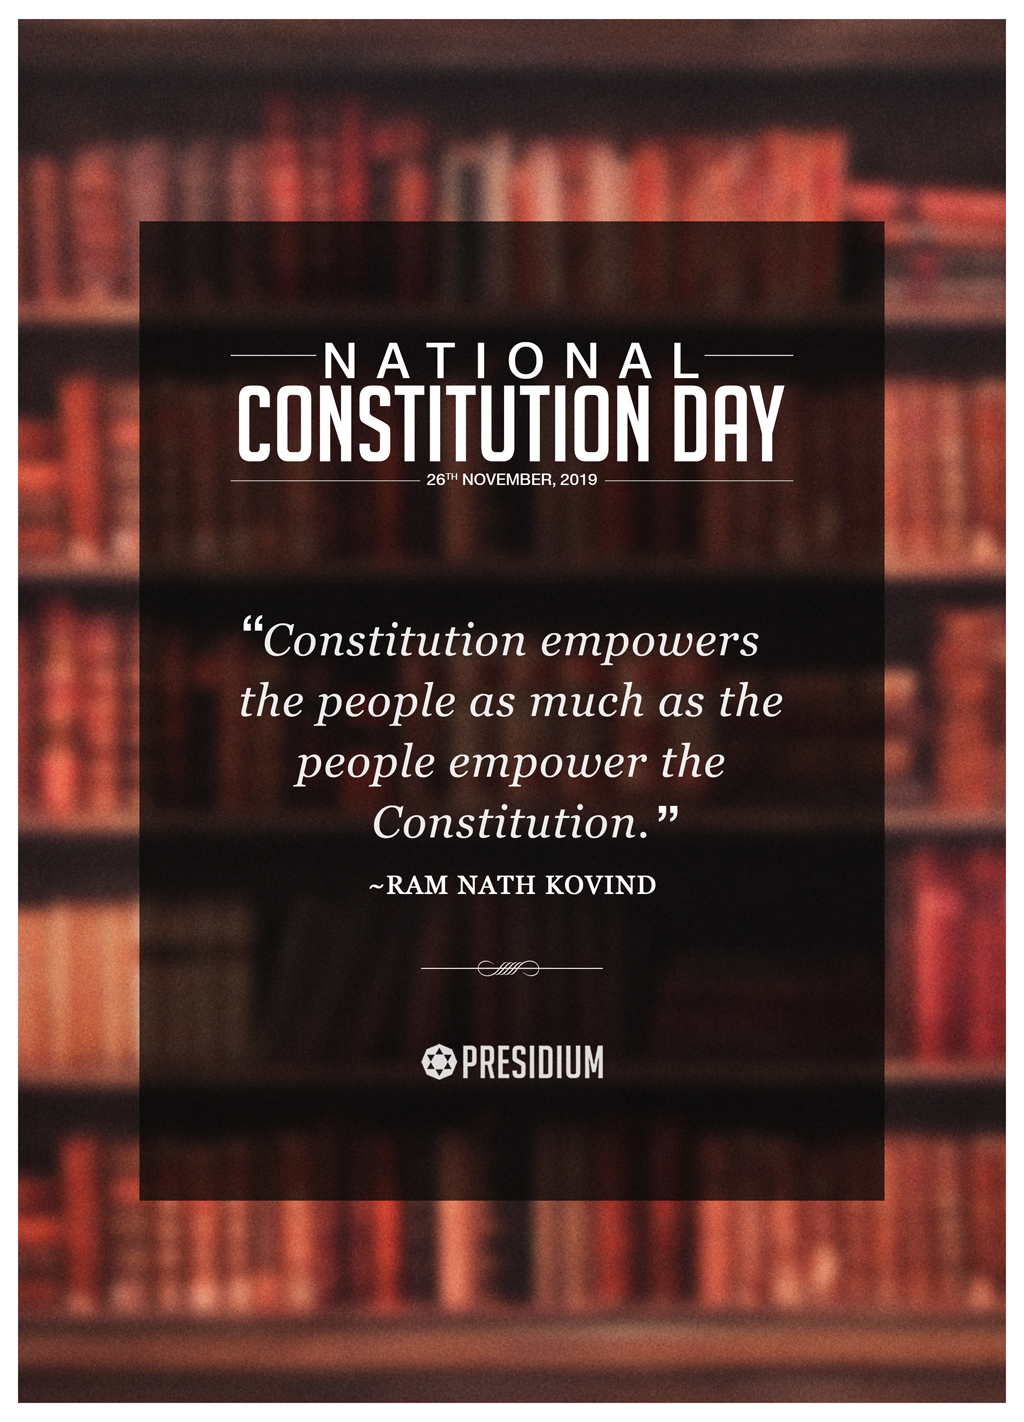 SALUTING THE CONSTITUTION FOR MAKING INDIA A SOVEREIGN NATION